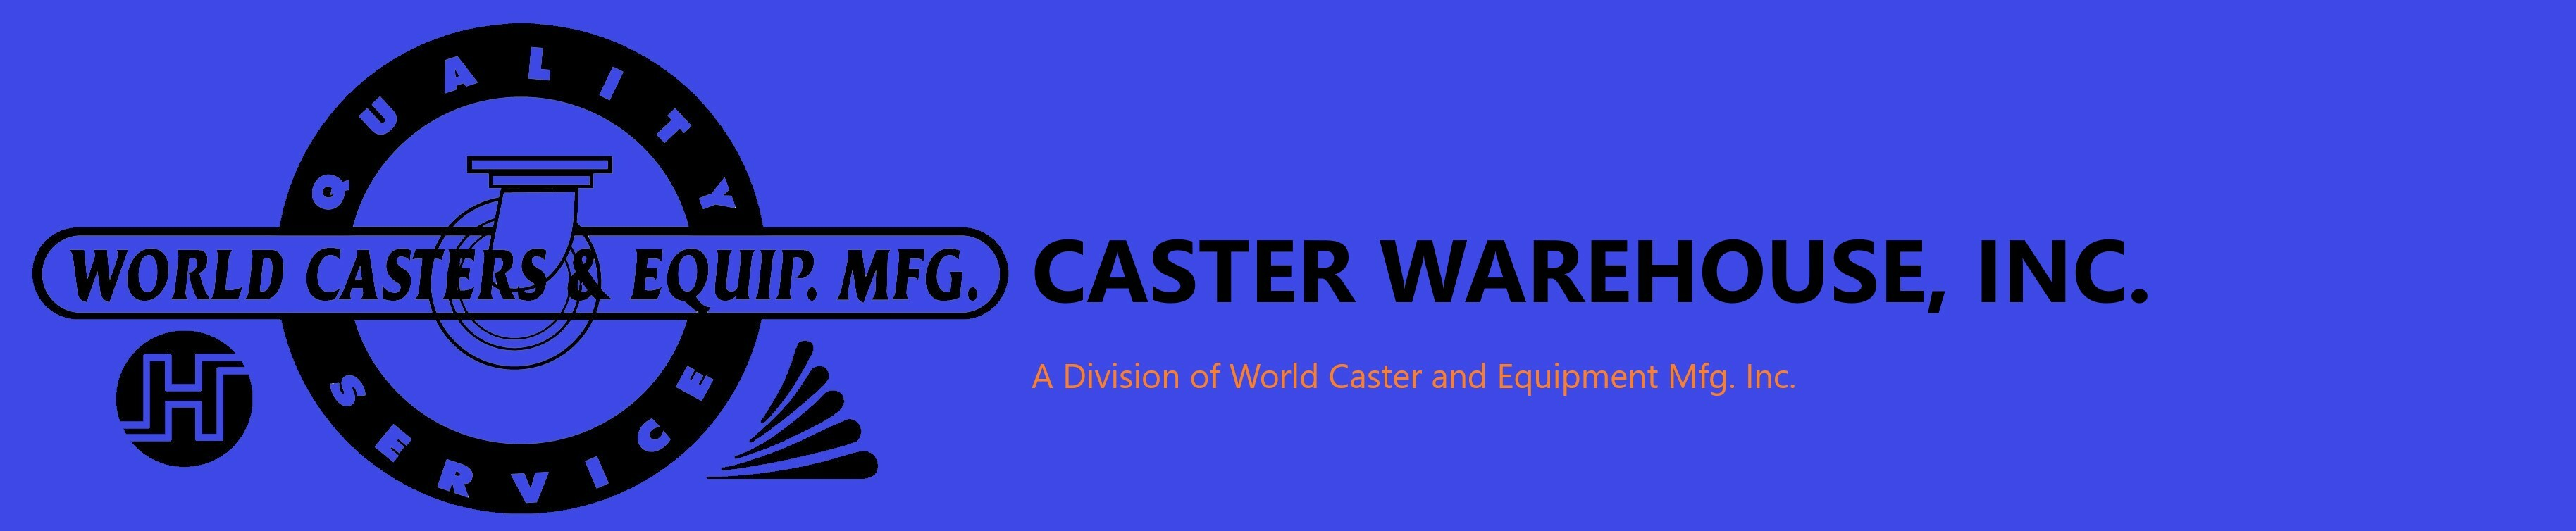 Caster Warehouse, inc.